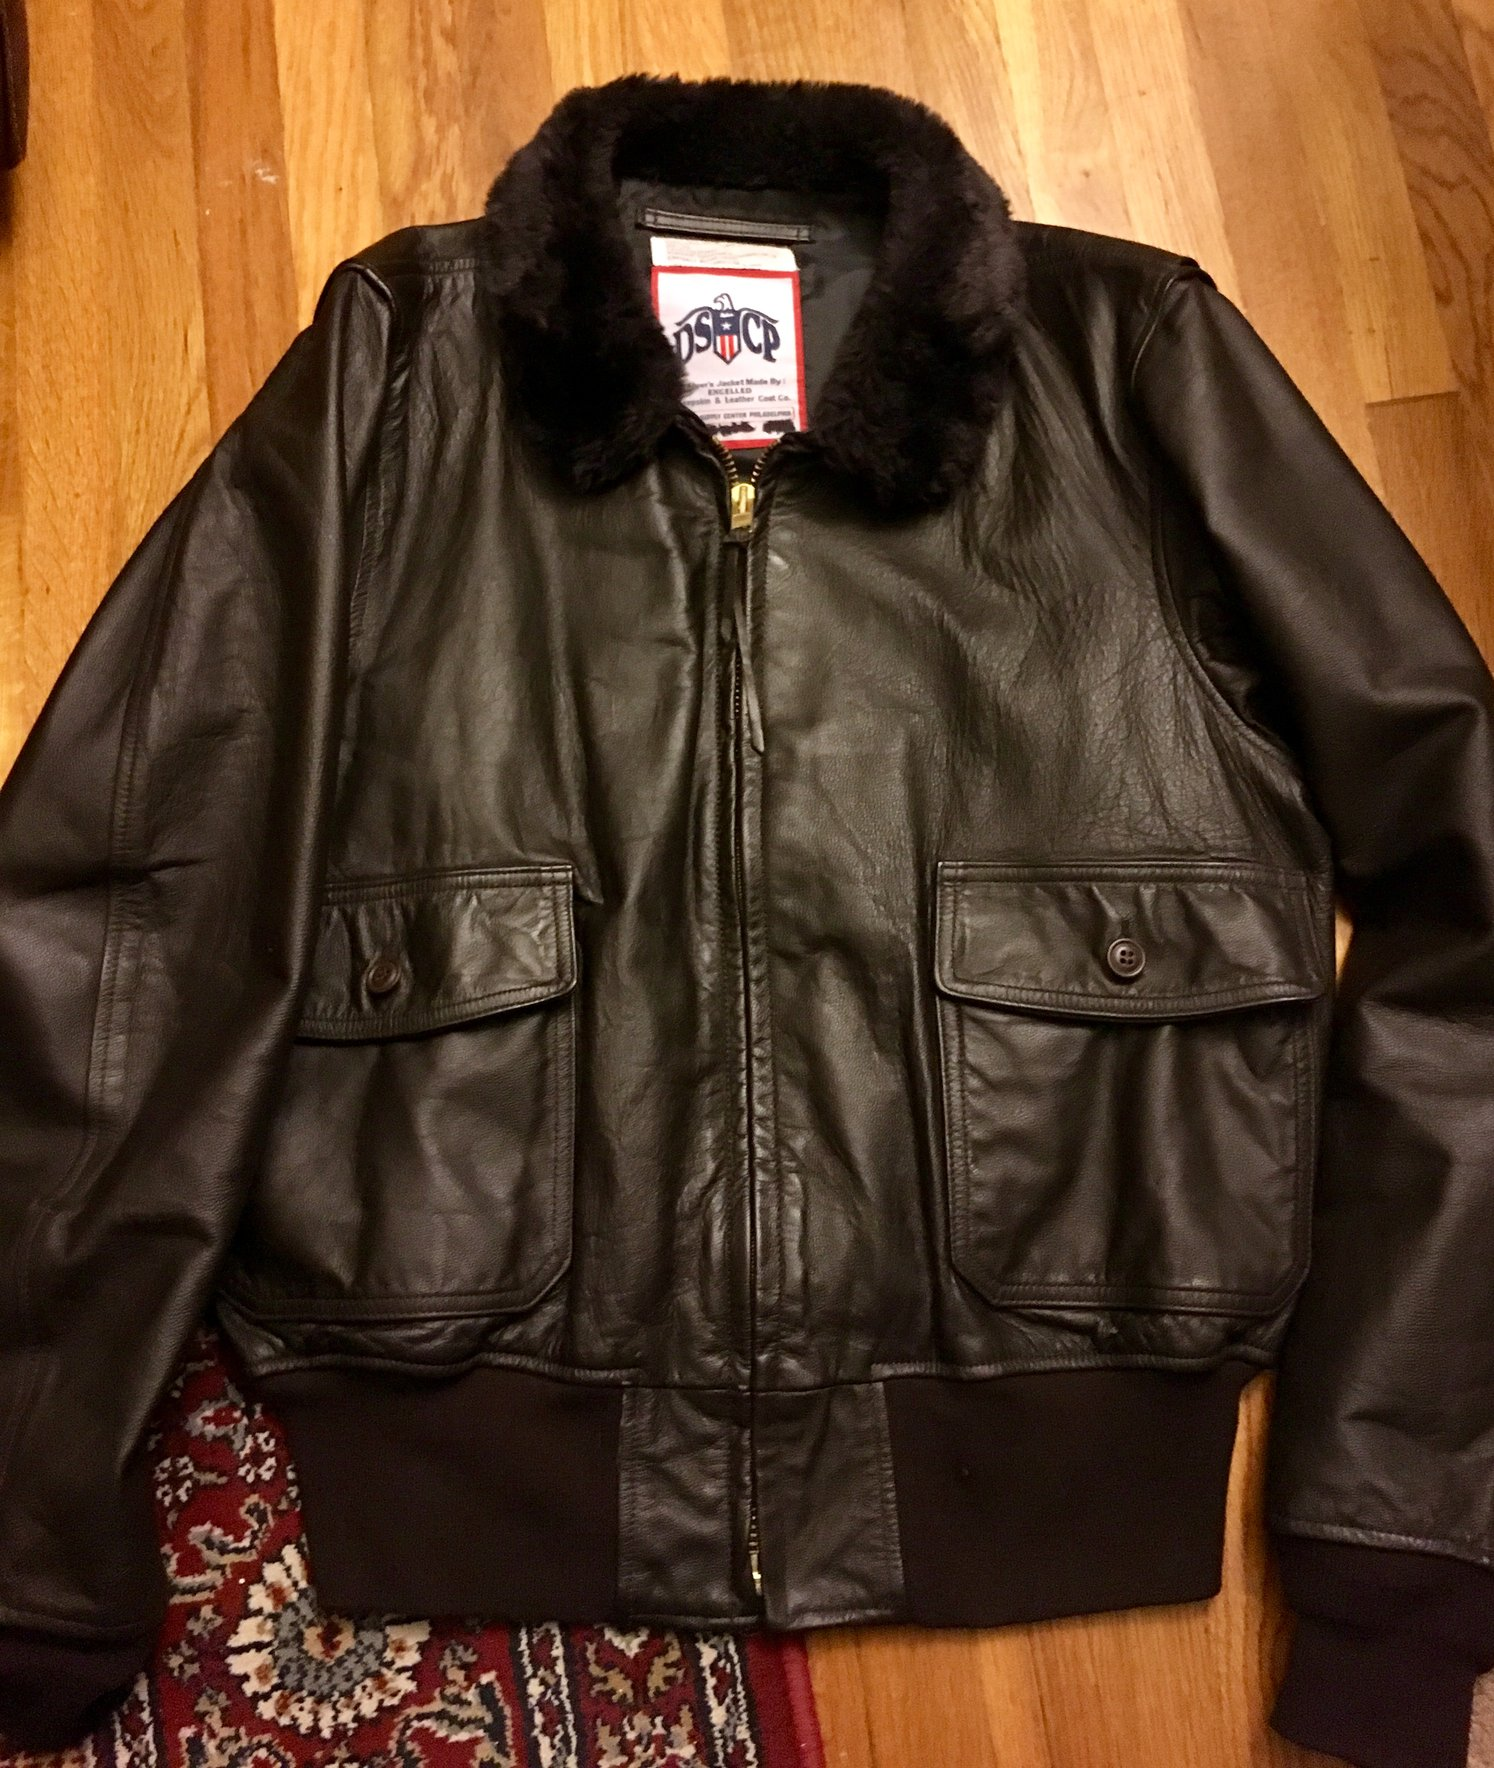 Excelled Sheepskin and Leather Company G-1 Jackets   Page 2   The ...